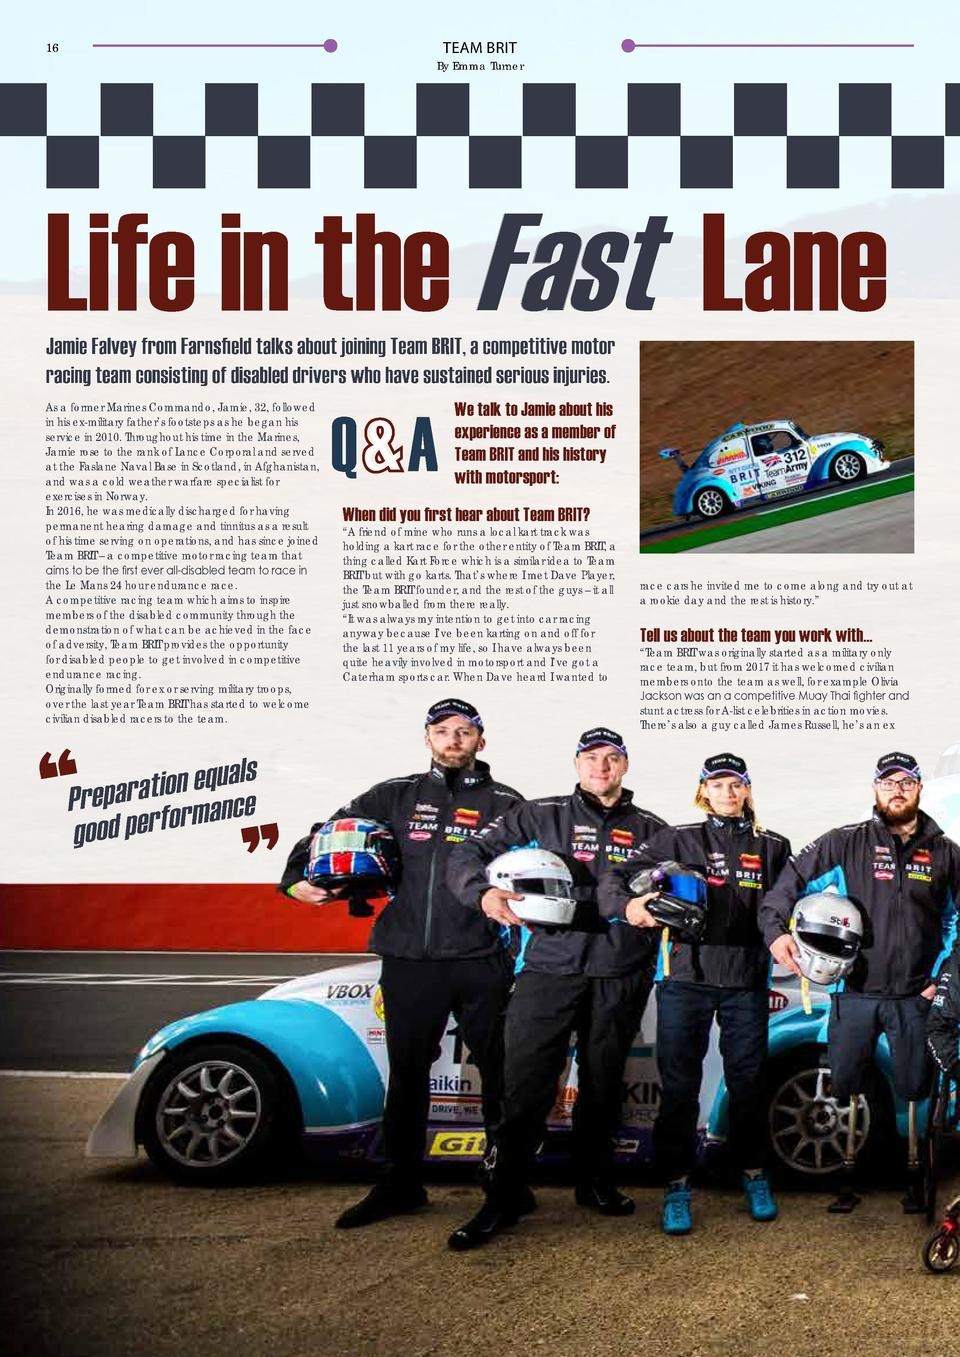 TEAM BRIT  16  TEAM BRIT  17  By Emma Turner  Life in the Fast Lane  he uses has been developed over about four versions, ...